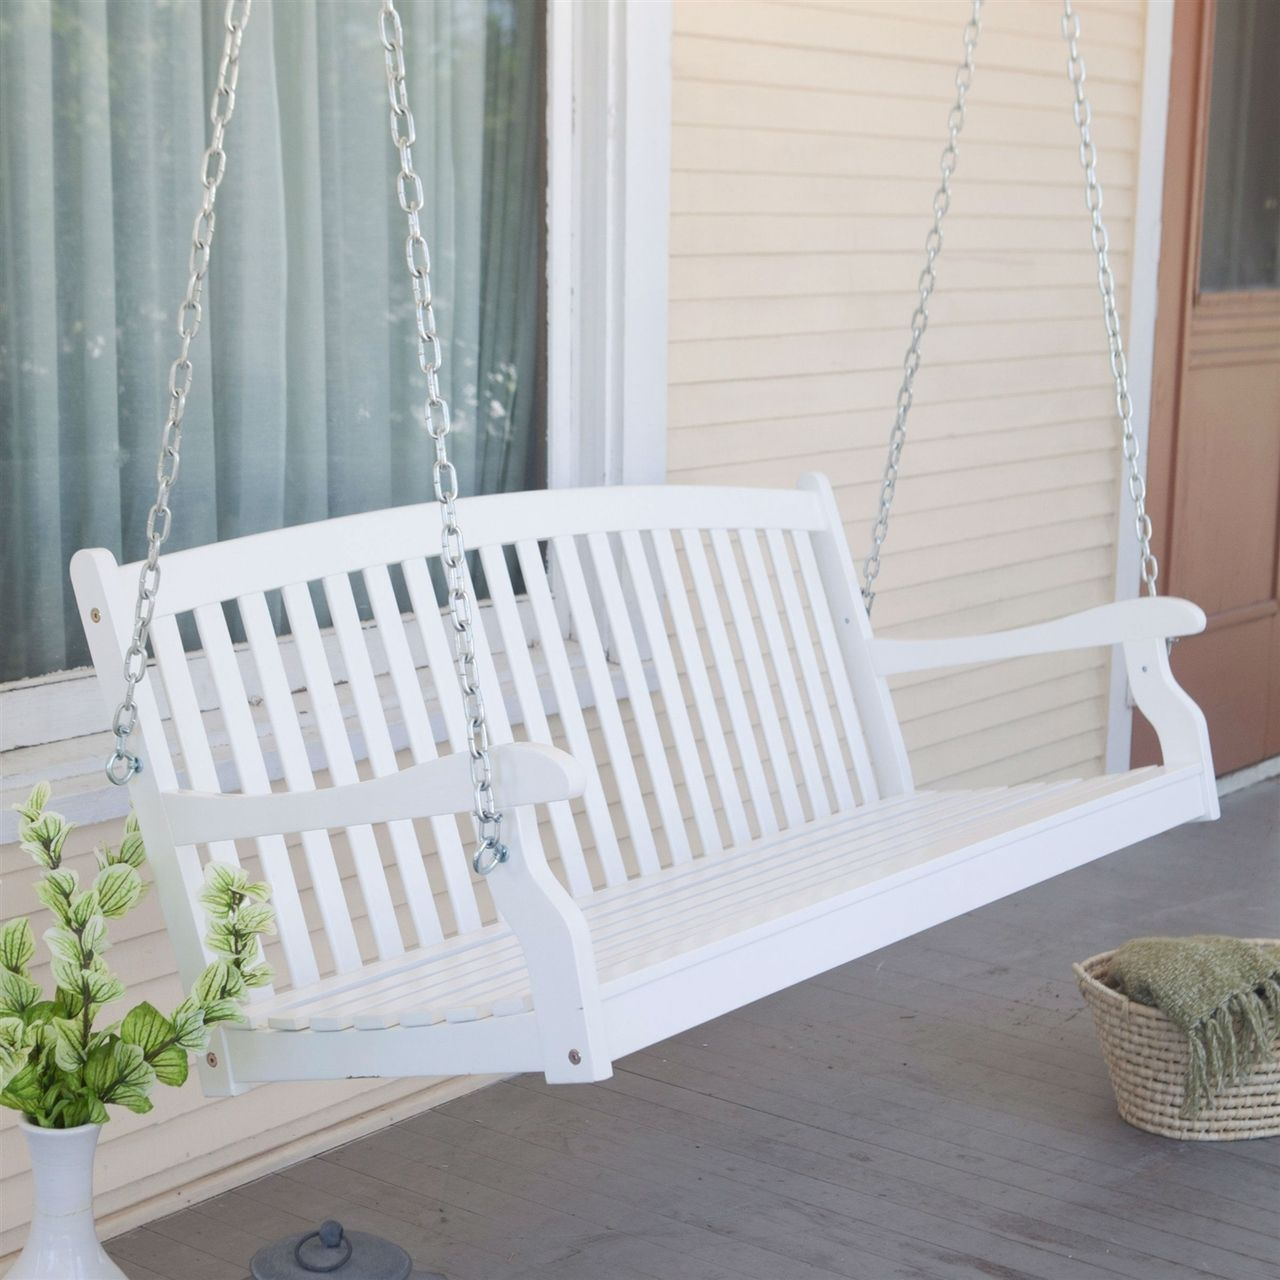 Curved Back 5 Ft Porch Swing, White Wood Finish, Comfort With Vineyard Porch Swings (Image 4 of 25)